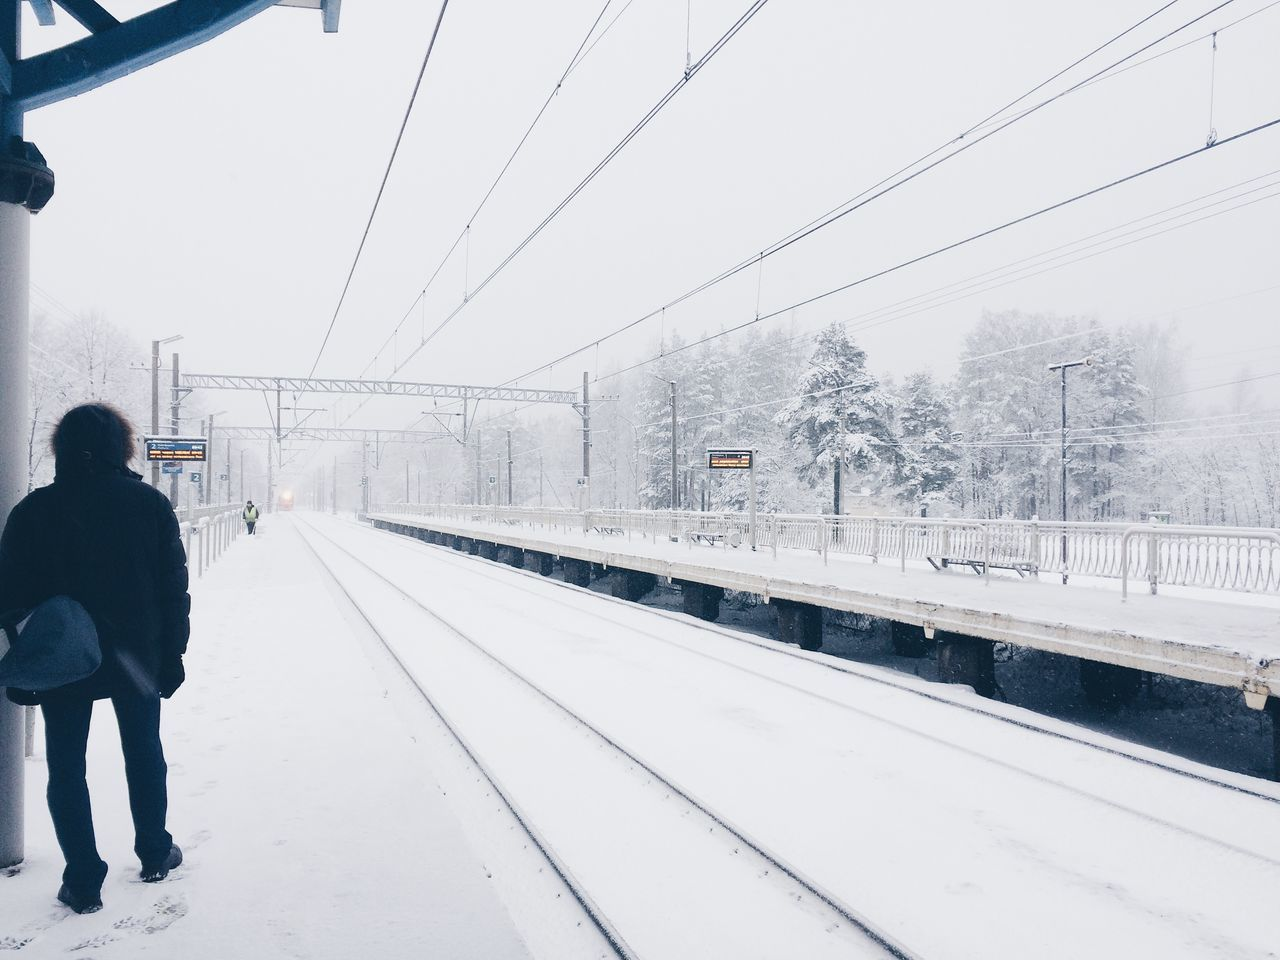 Adult Adults Only Architecture Built Structure City City Life Cold Temperature Day One Person Only Men Outdoors Overhead Cable Car People Real People Sky Snow Snowing Transportation Tree Weather Winter